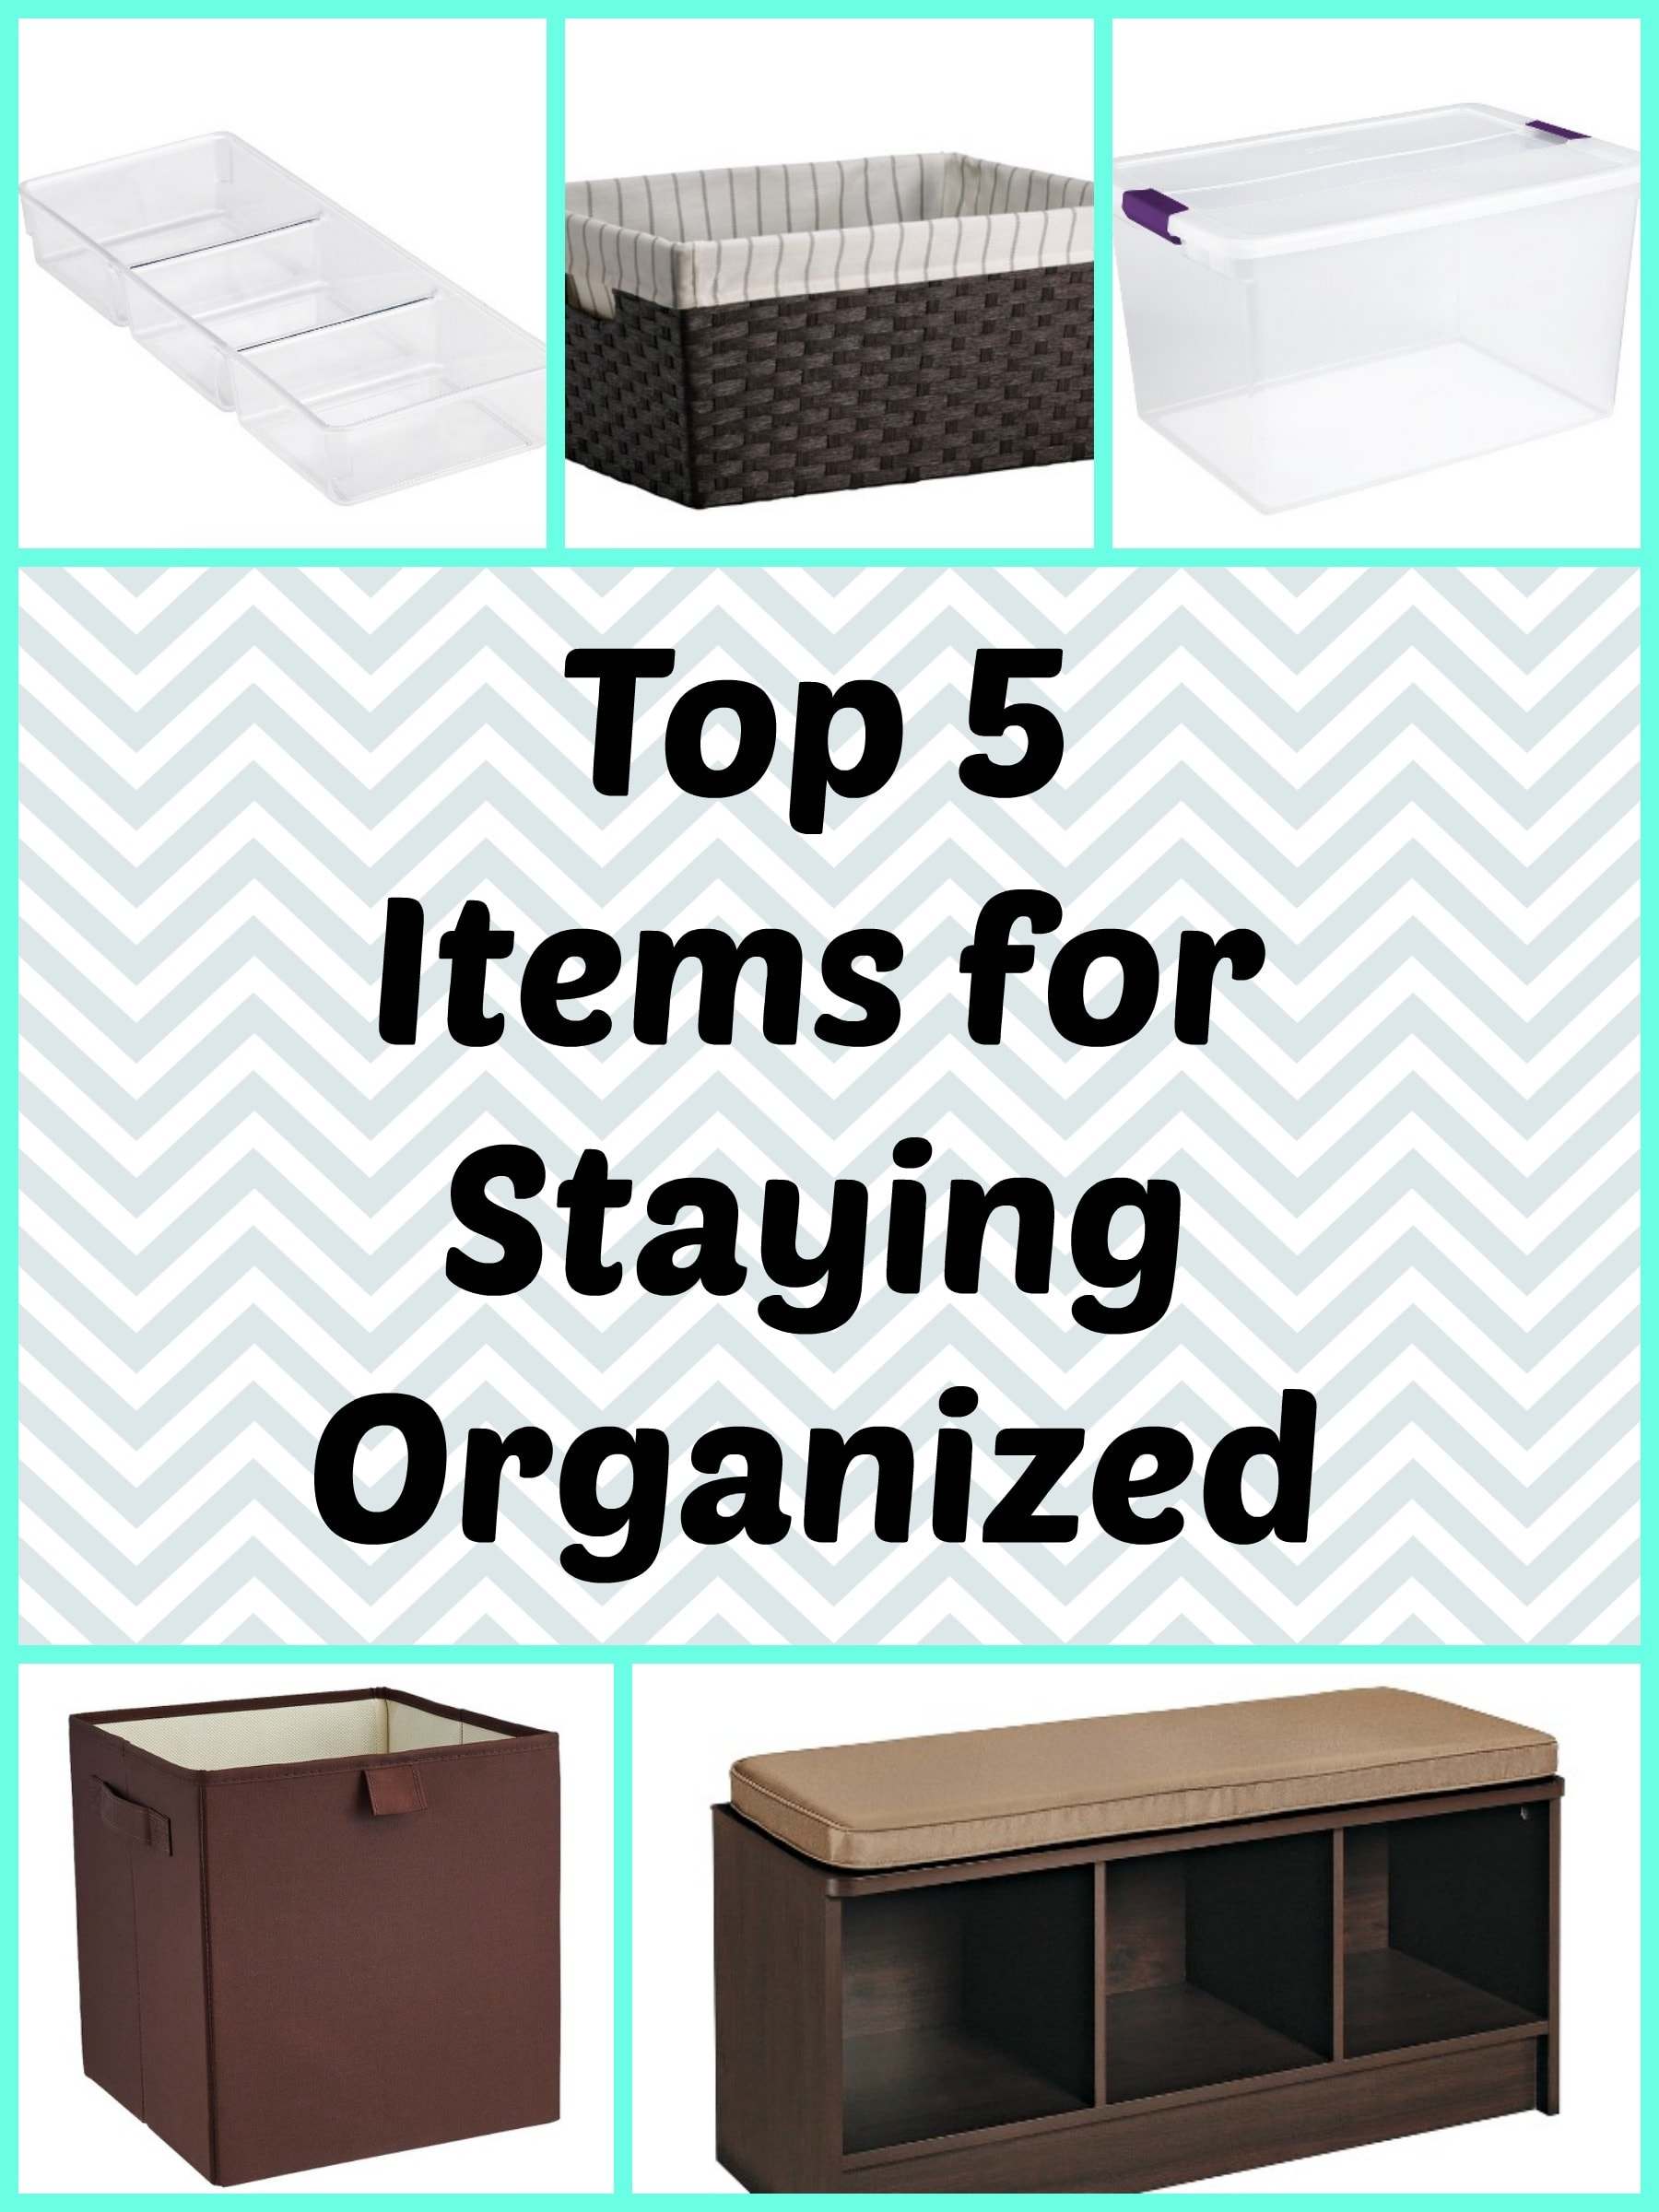 Top 5 Items for Staying Organized